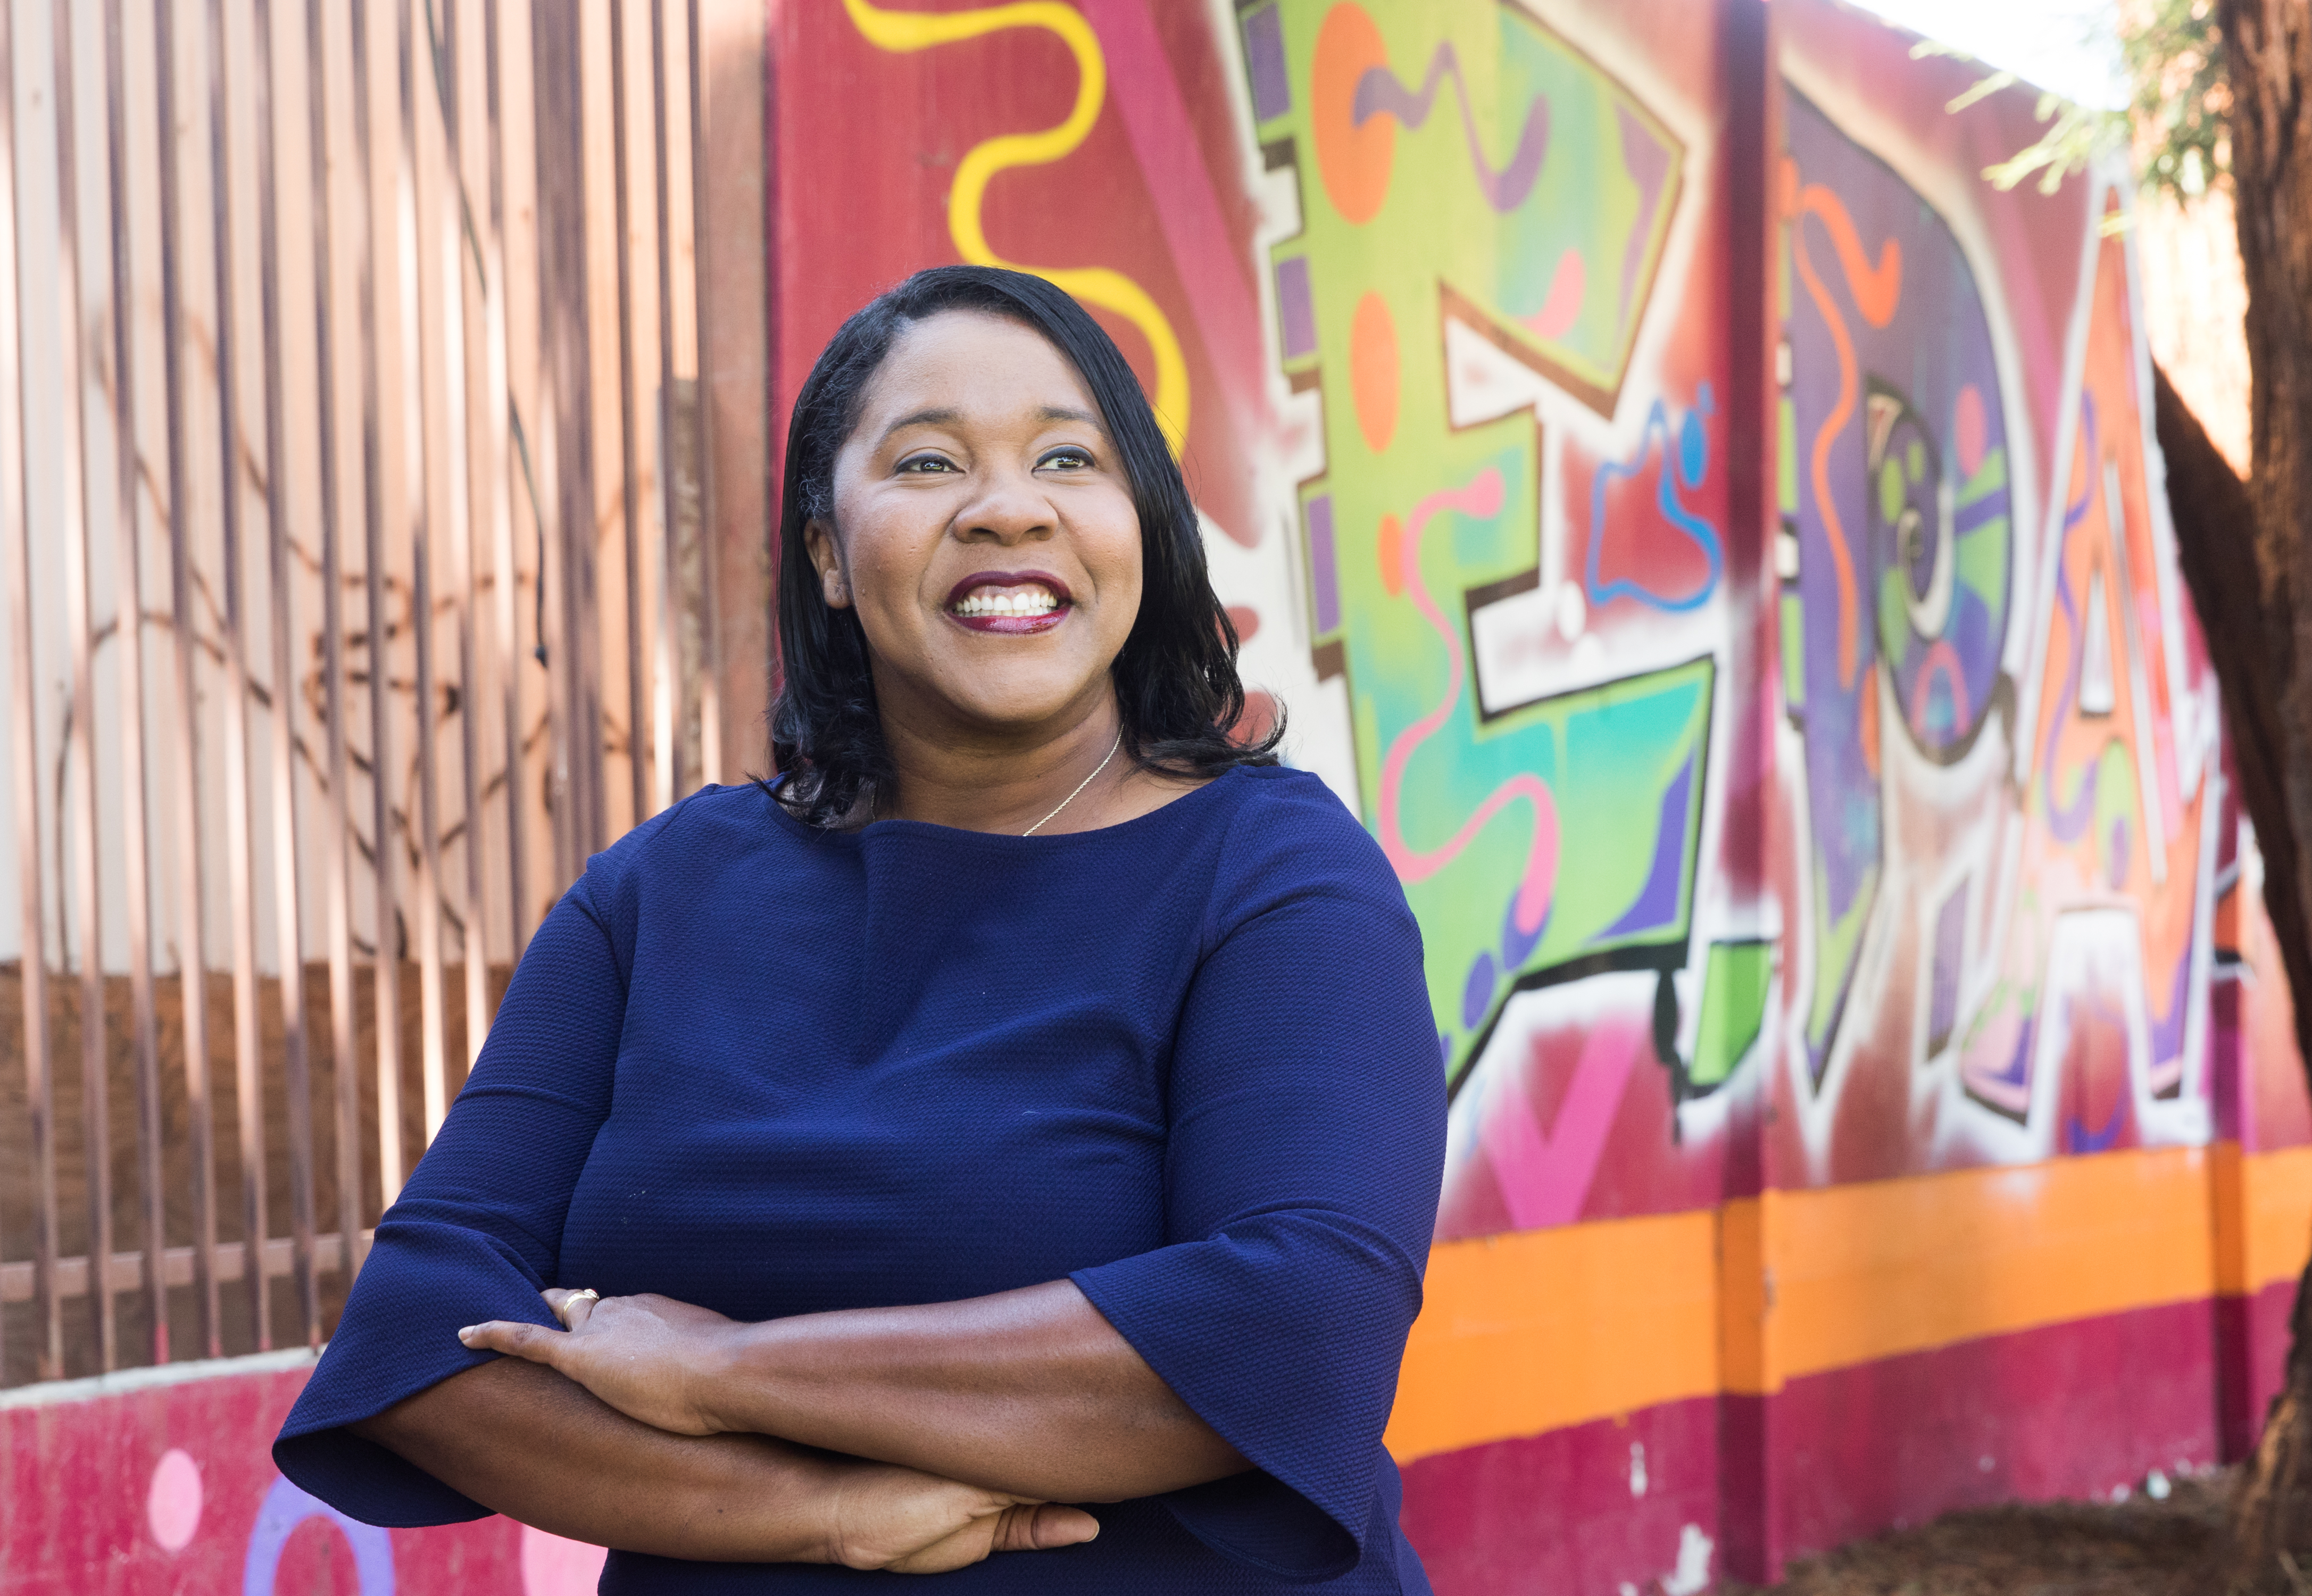 East Palo Alto City Council candidate Regina Wallace-Jones said the goal should be not to tax corporations. Rather, the city should strive to get all entities to do their fair share. Photo by Veronica Weber.